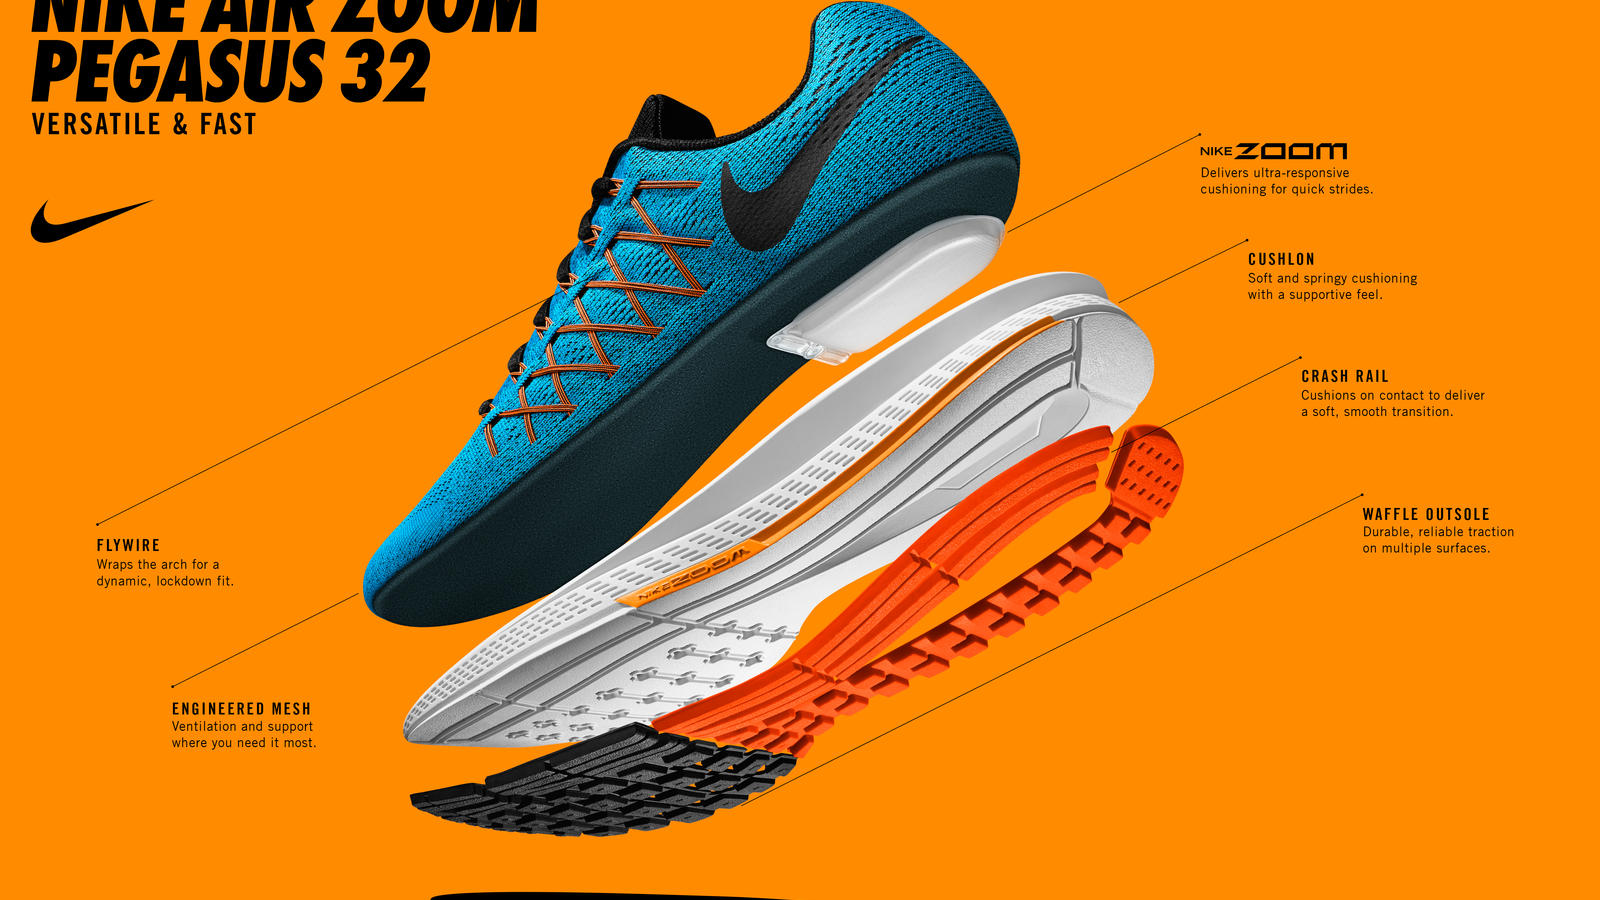 63d4c379fab1 Designed For Faster  Nike Zoom Air - Nike News